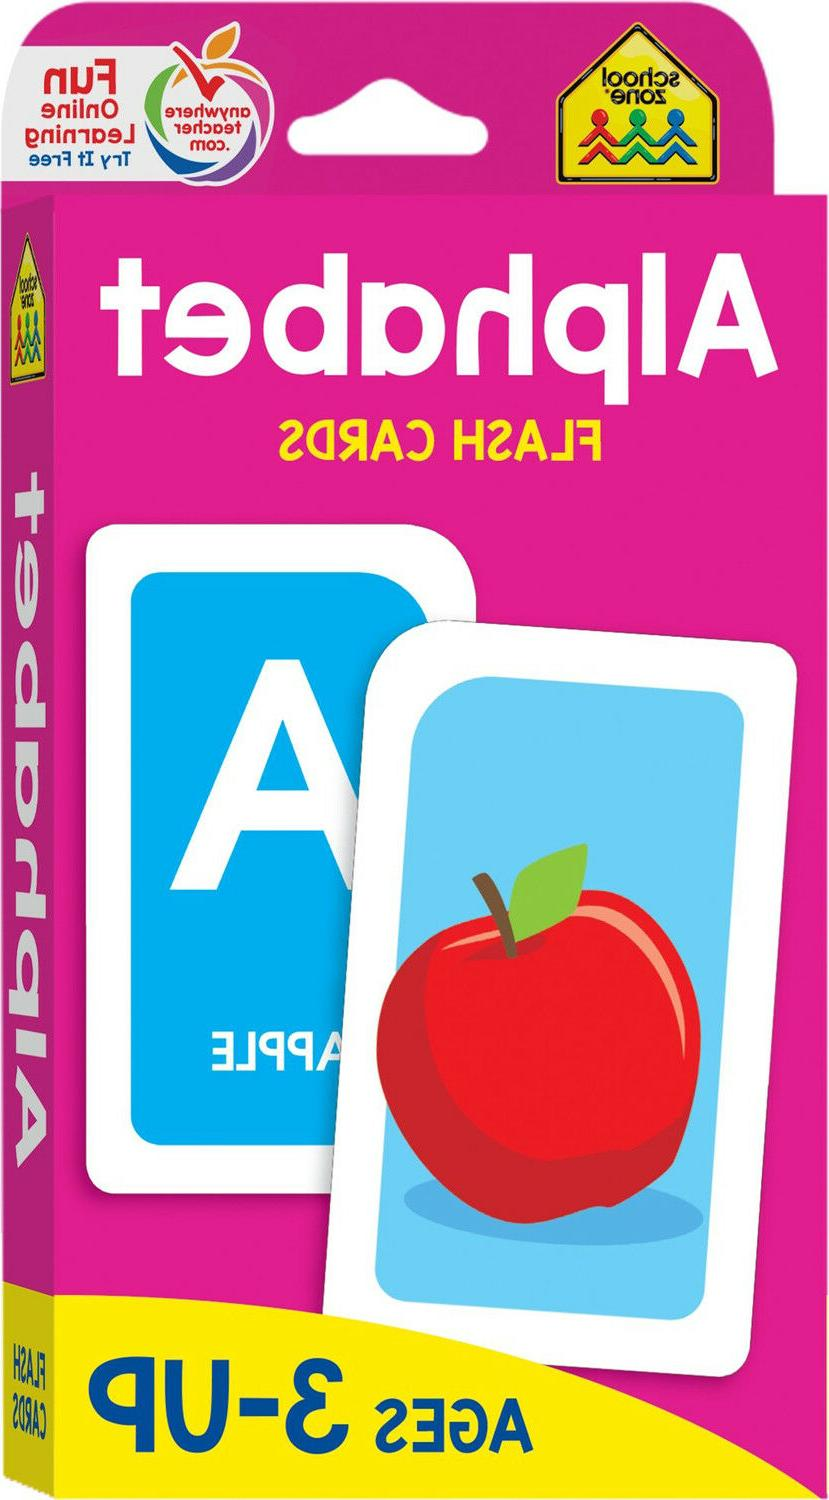 Alphabet Flash Cards Educational Materials Learning ABC Pres